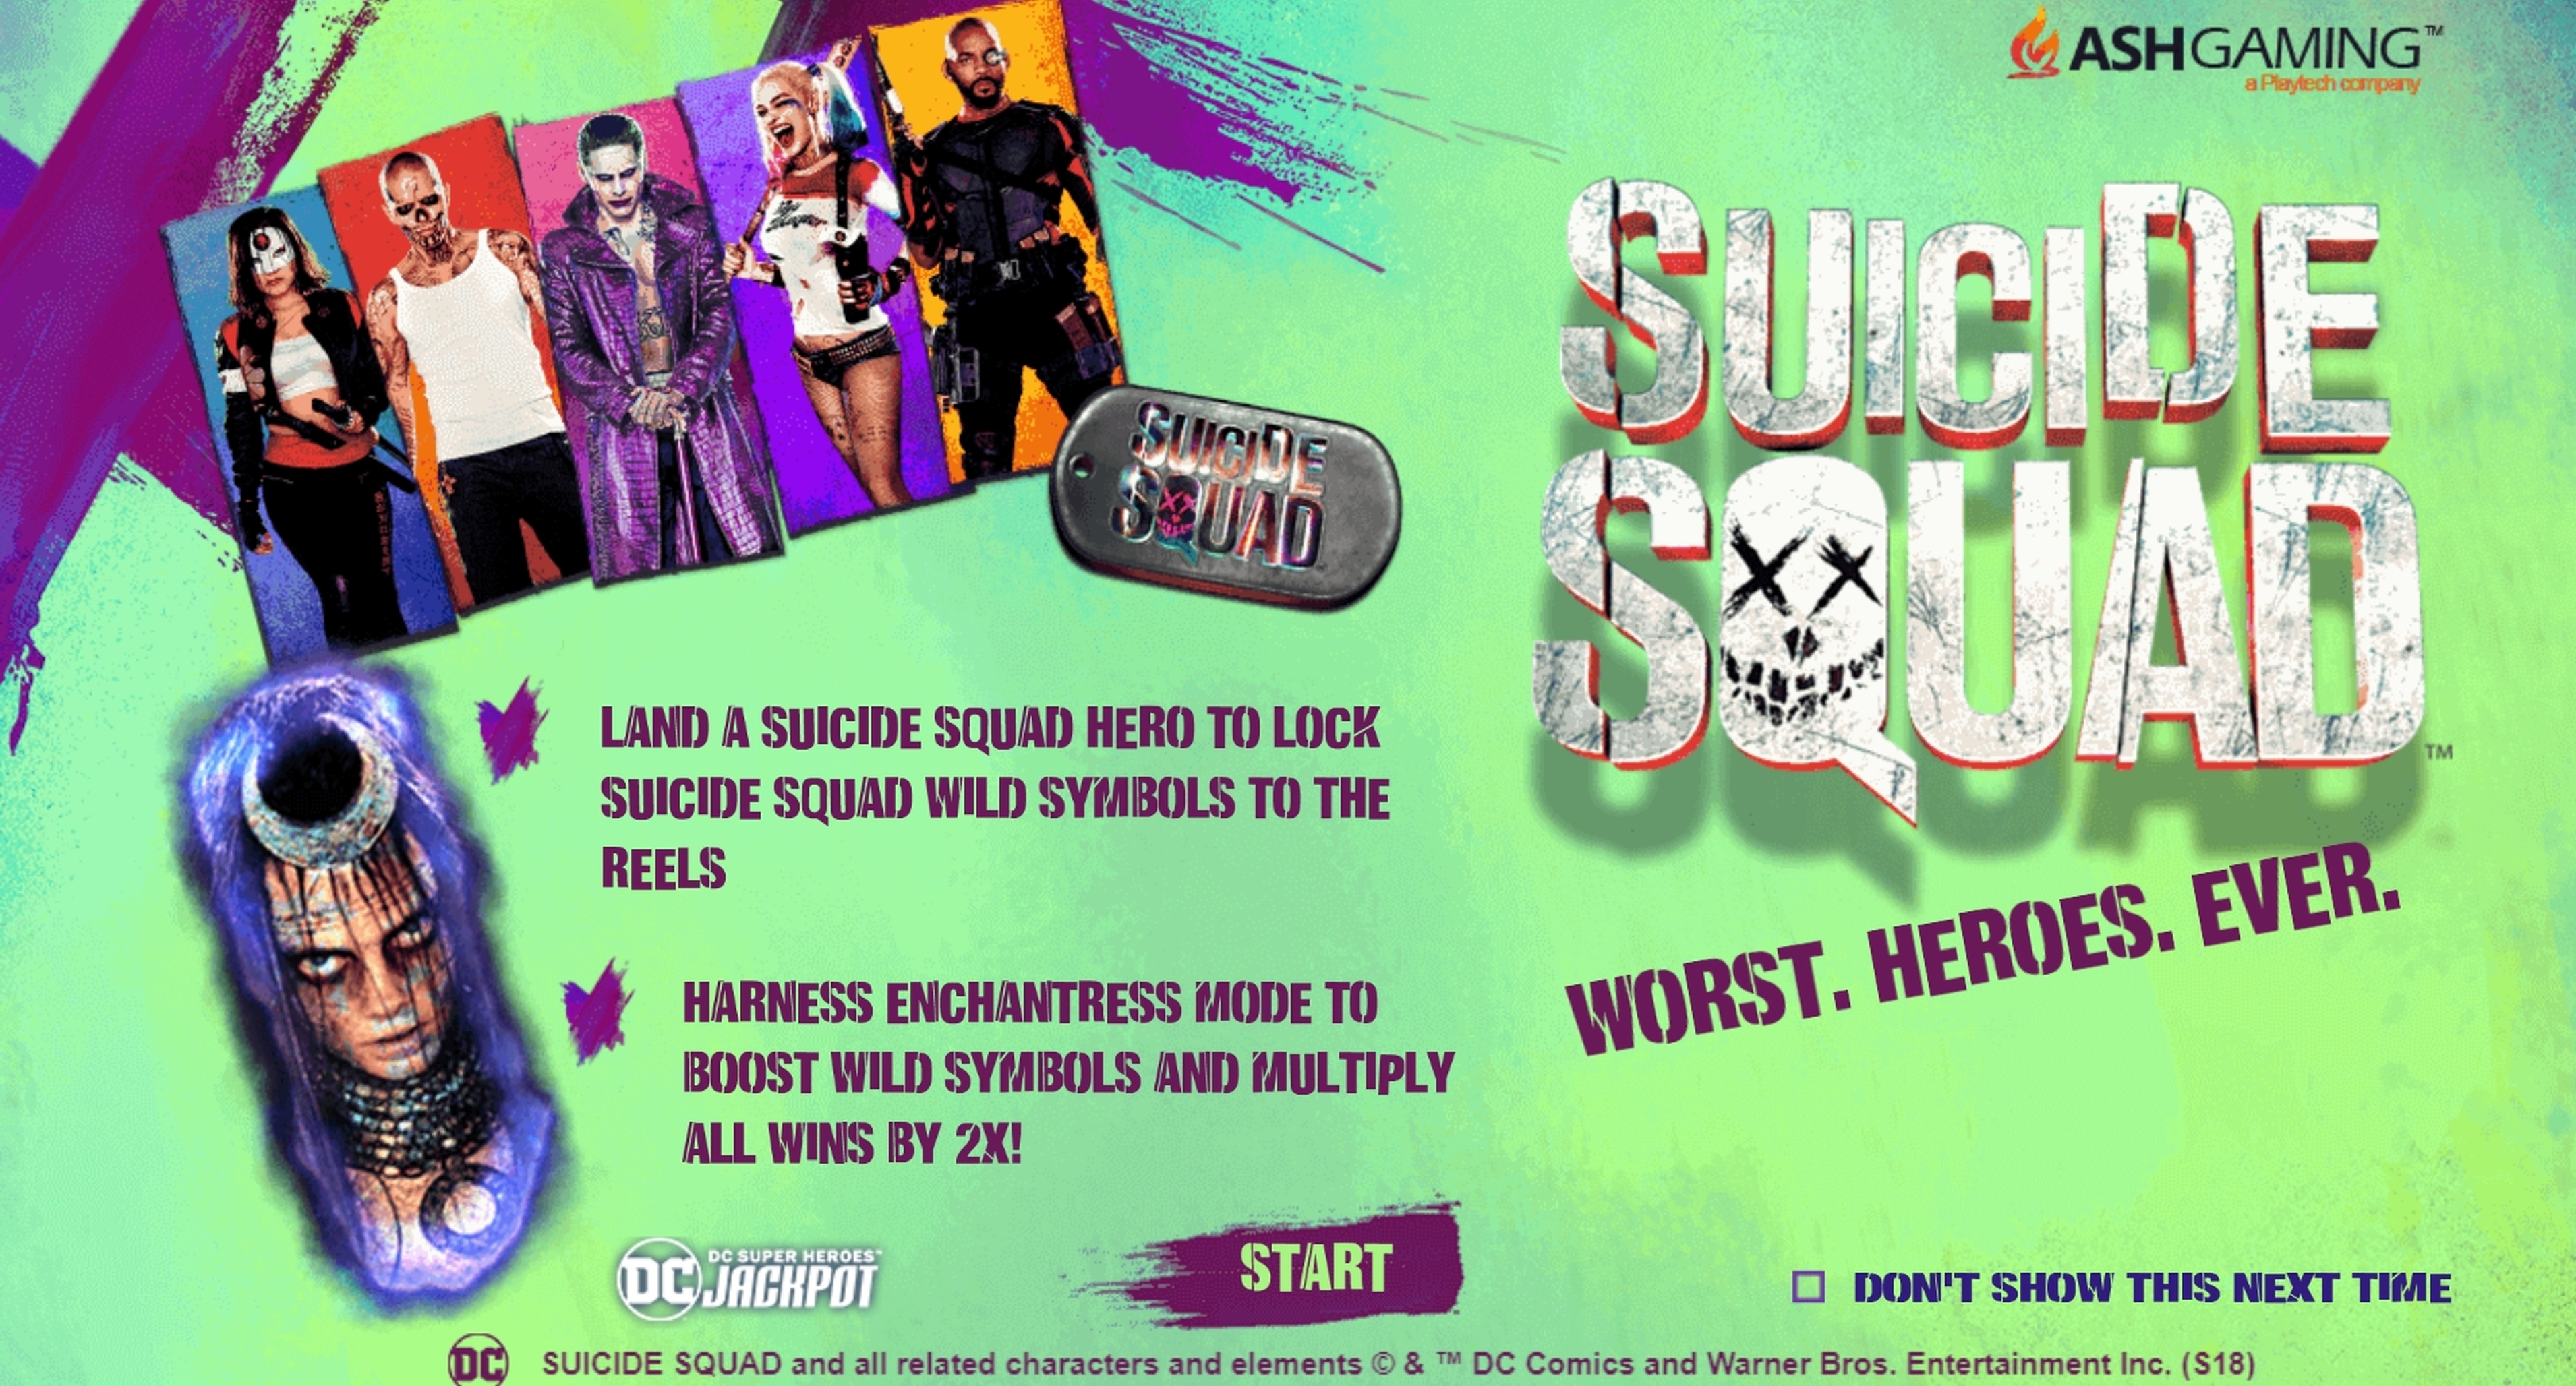 Play Suicide Squad Free Casino Slot Game by Ash Gaming